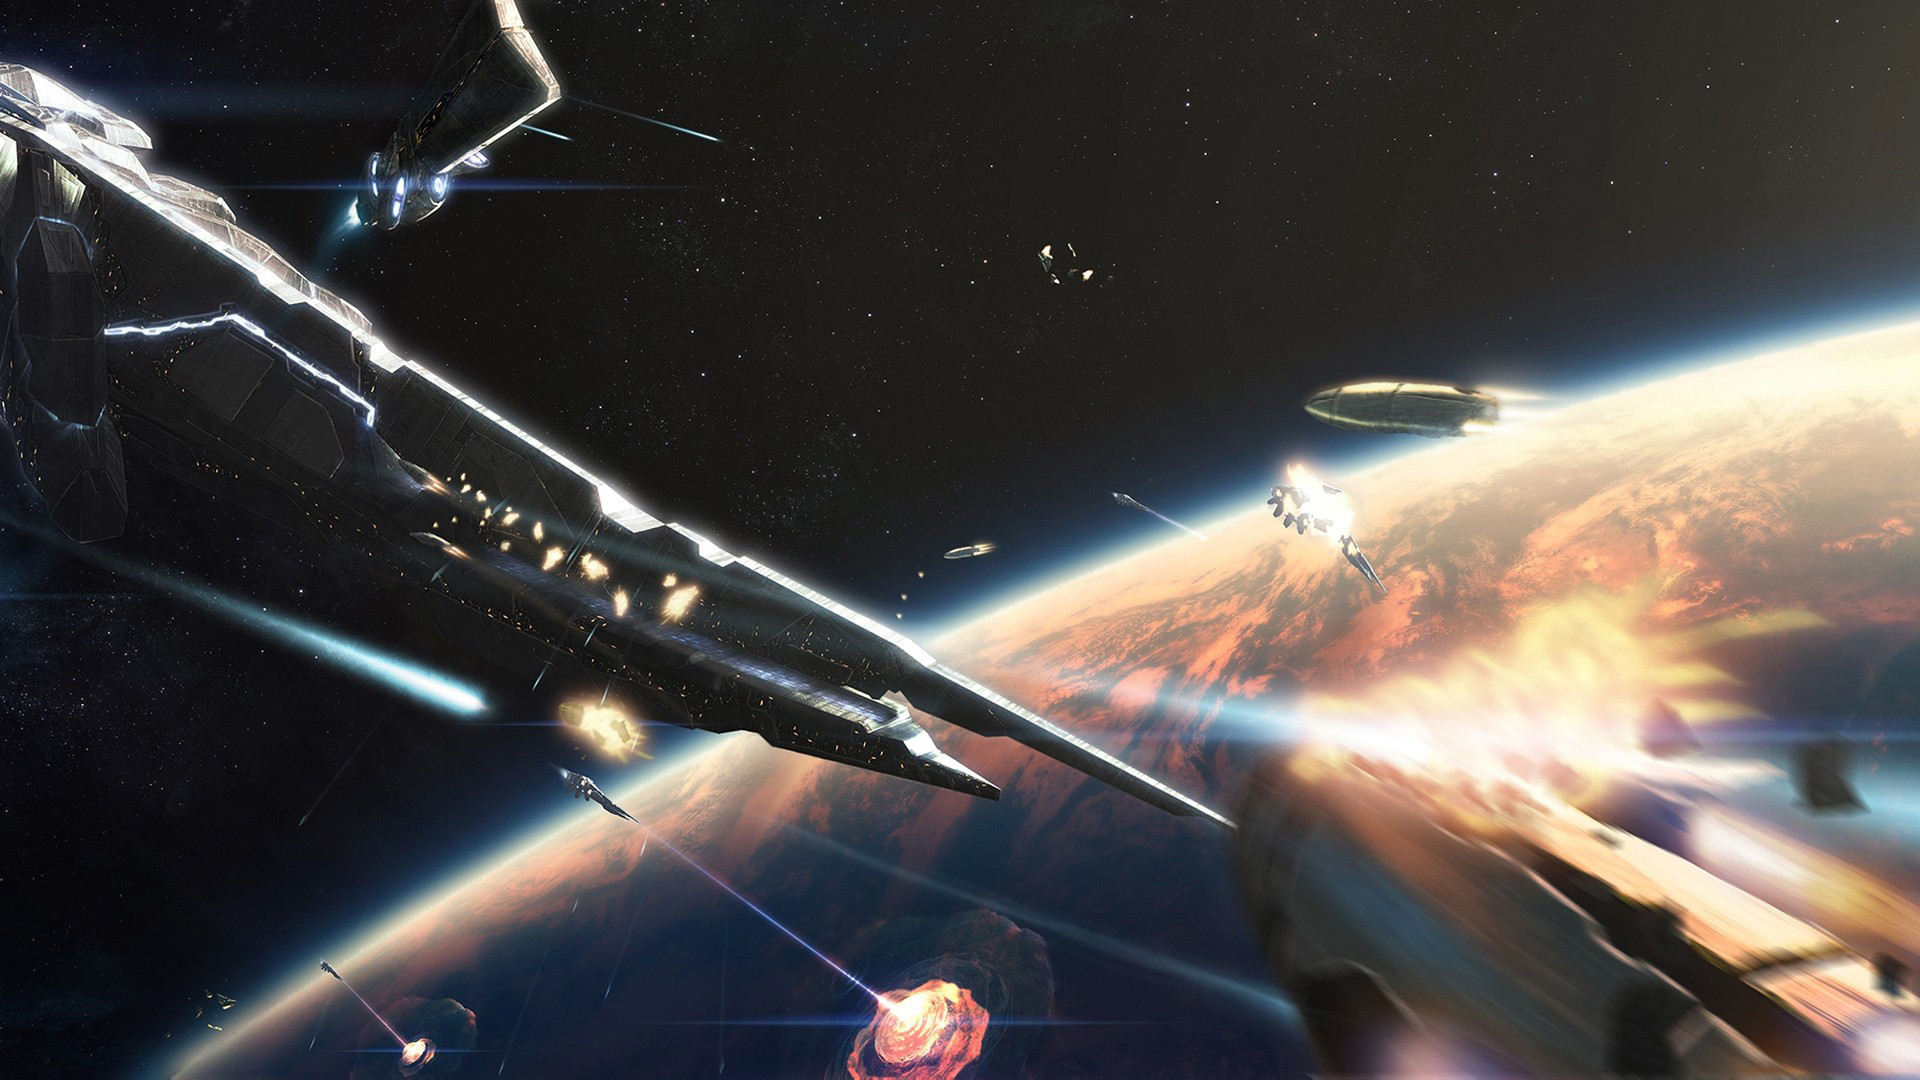 158 Best Sci-Fi and Space Wallpapers (HD) | Classy Bro